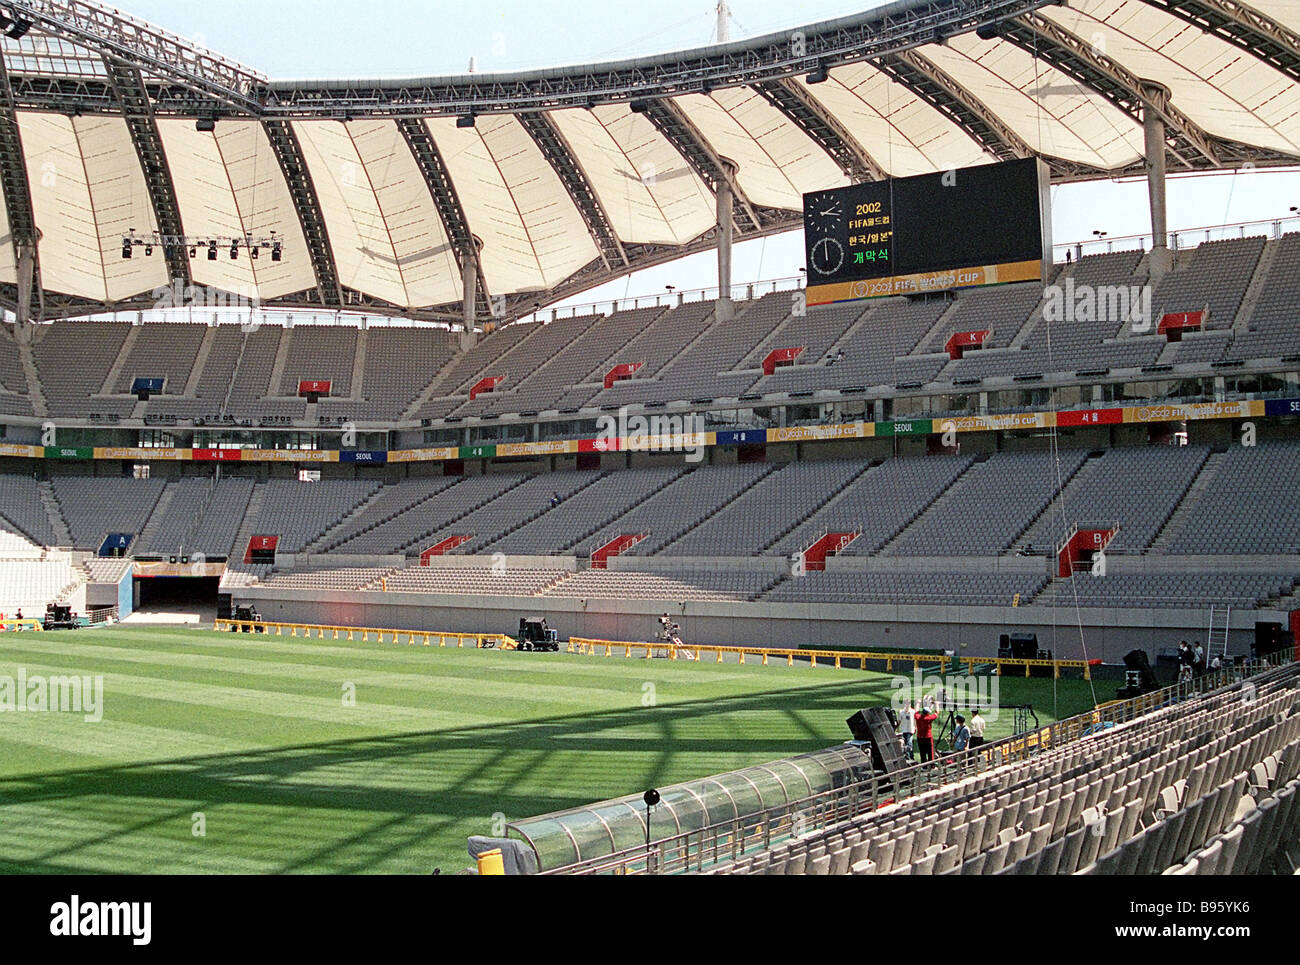 A stadium in Seoul, South Korea, which hosted the opening match of the the 17th World Football Championship. - Stock Image